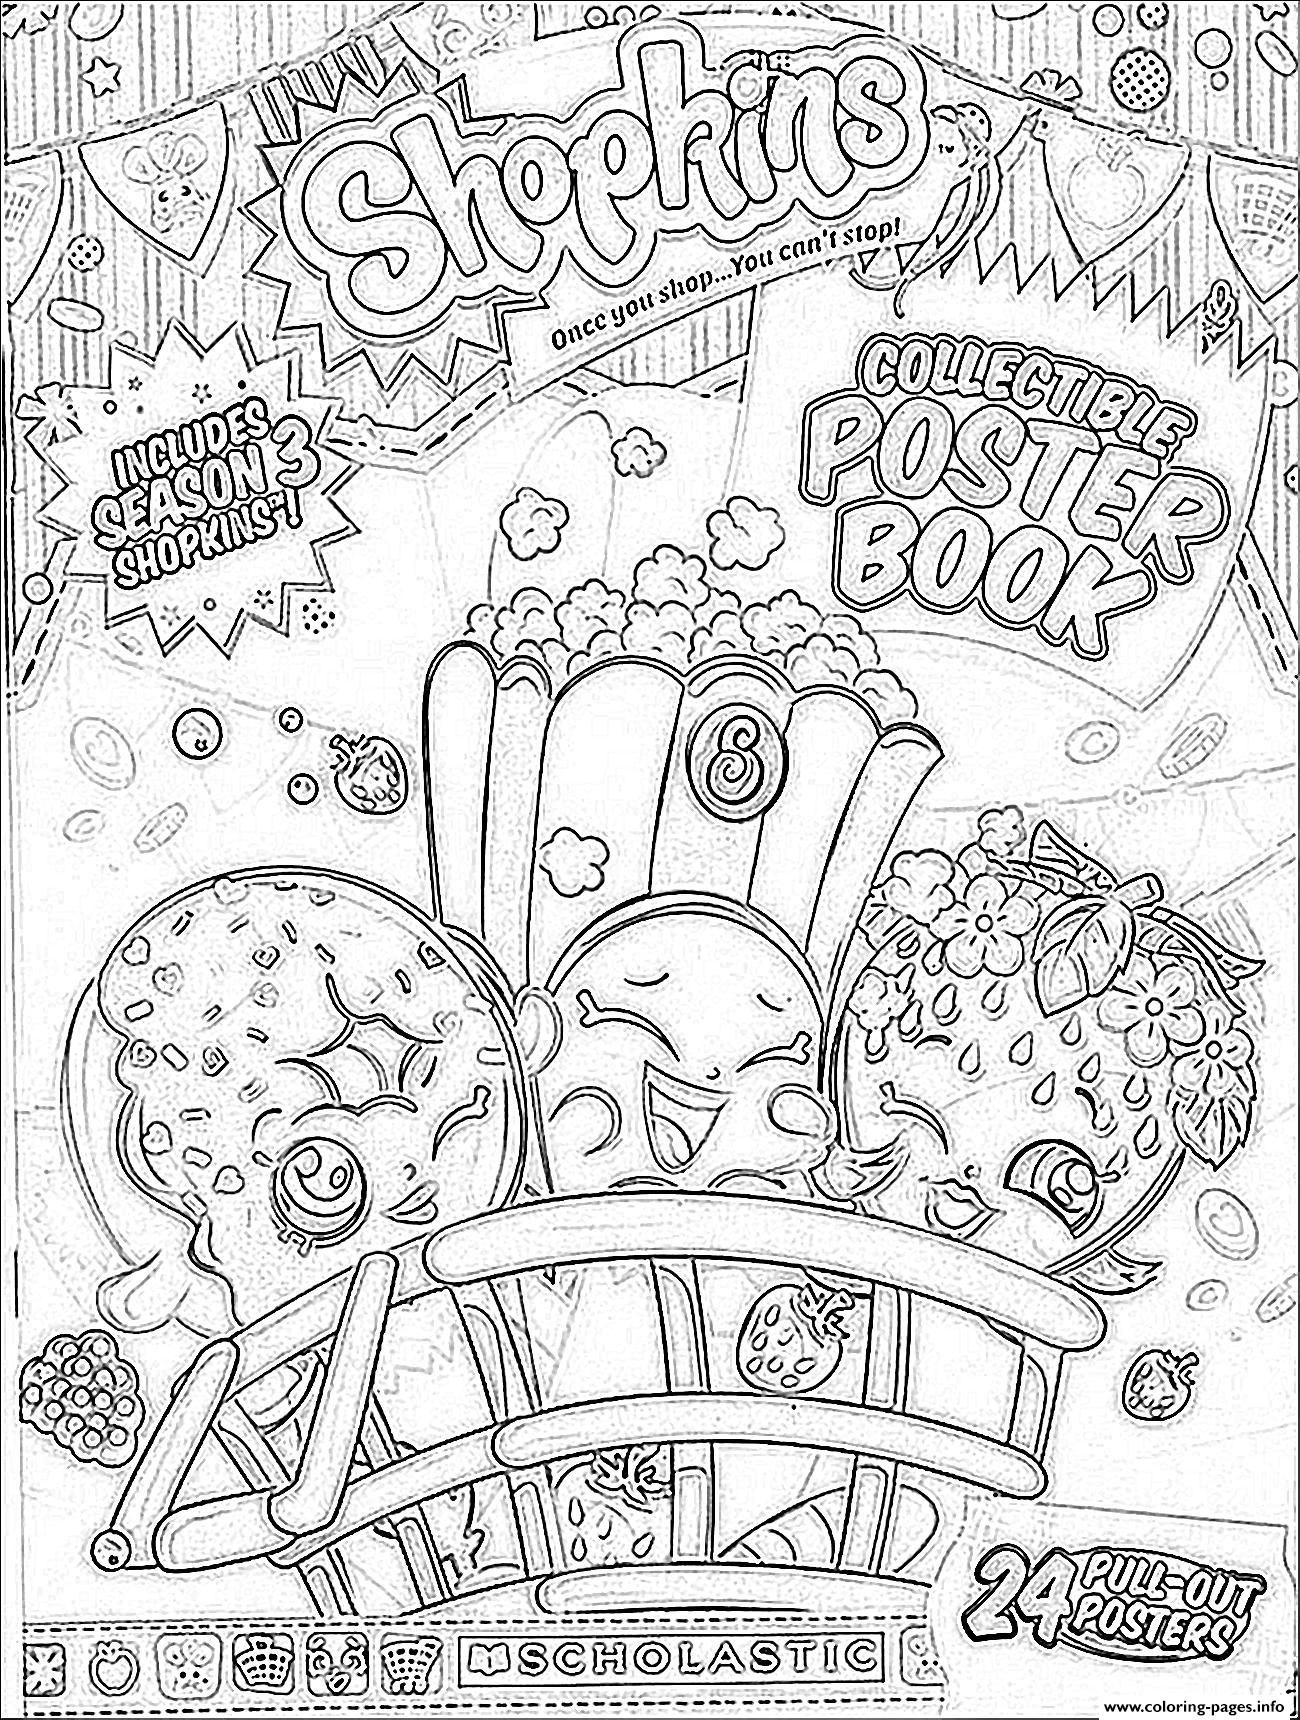 Print shopkins season 3 book coloring pages | Shopkins | Pinterest